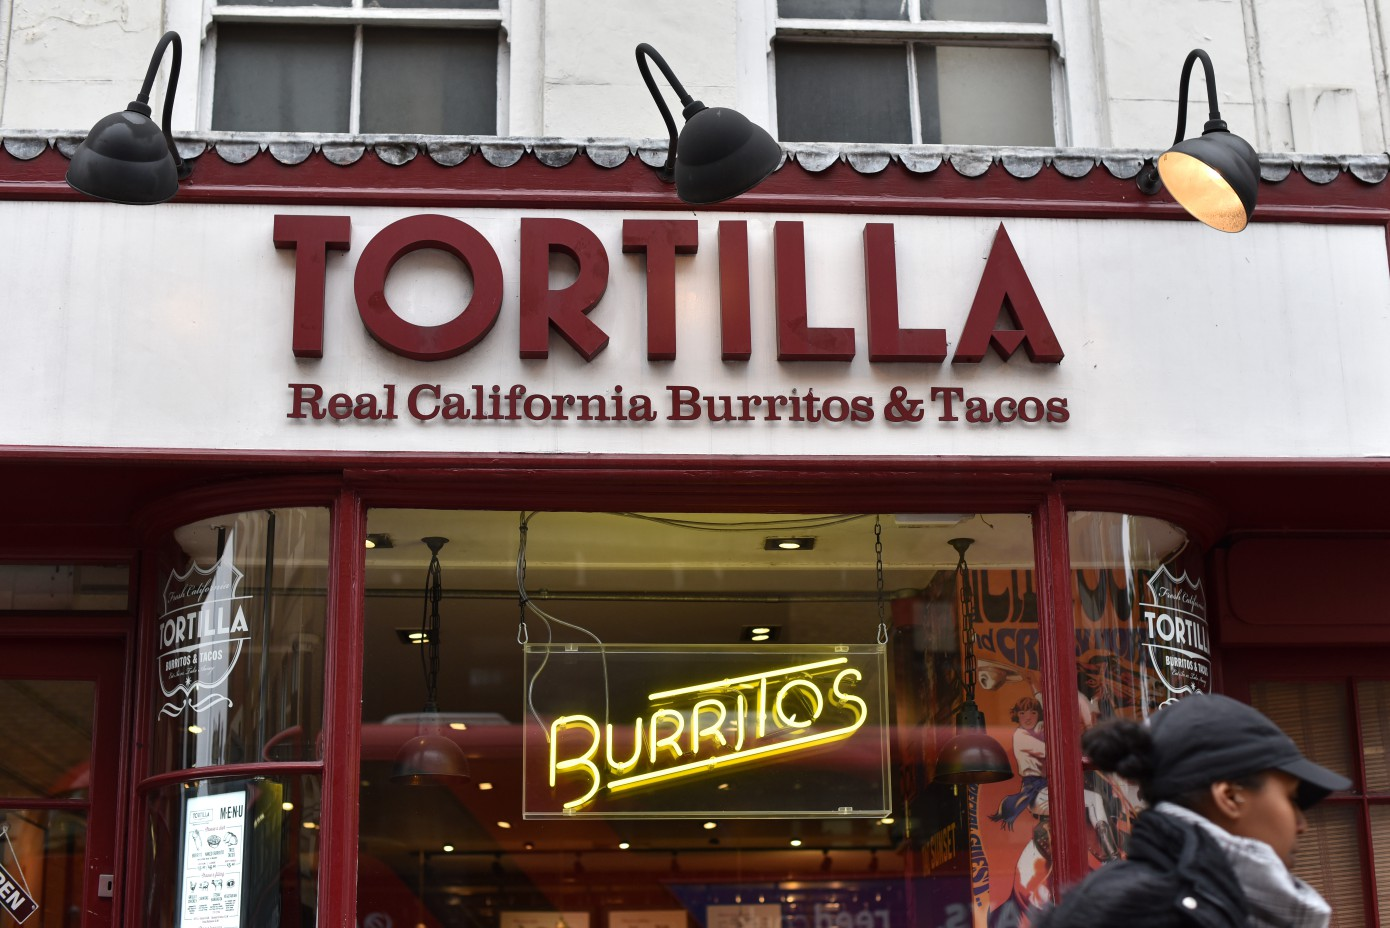 For a burrito fix on a budget, check out Tortilla during Deliveroo's offering